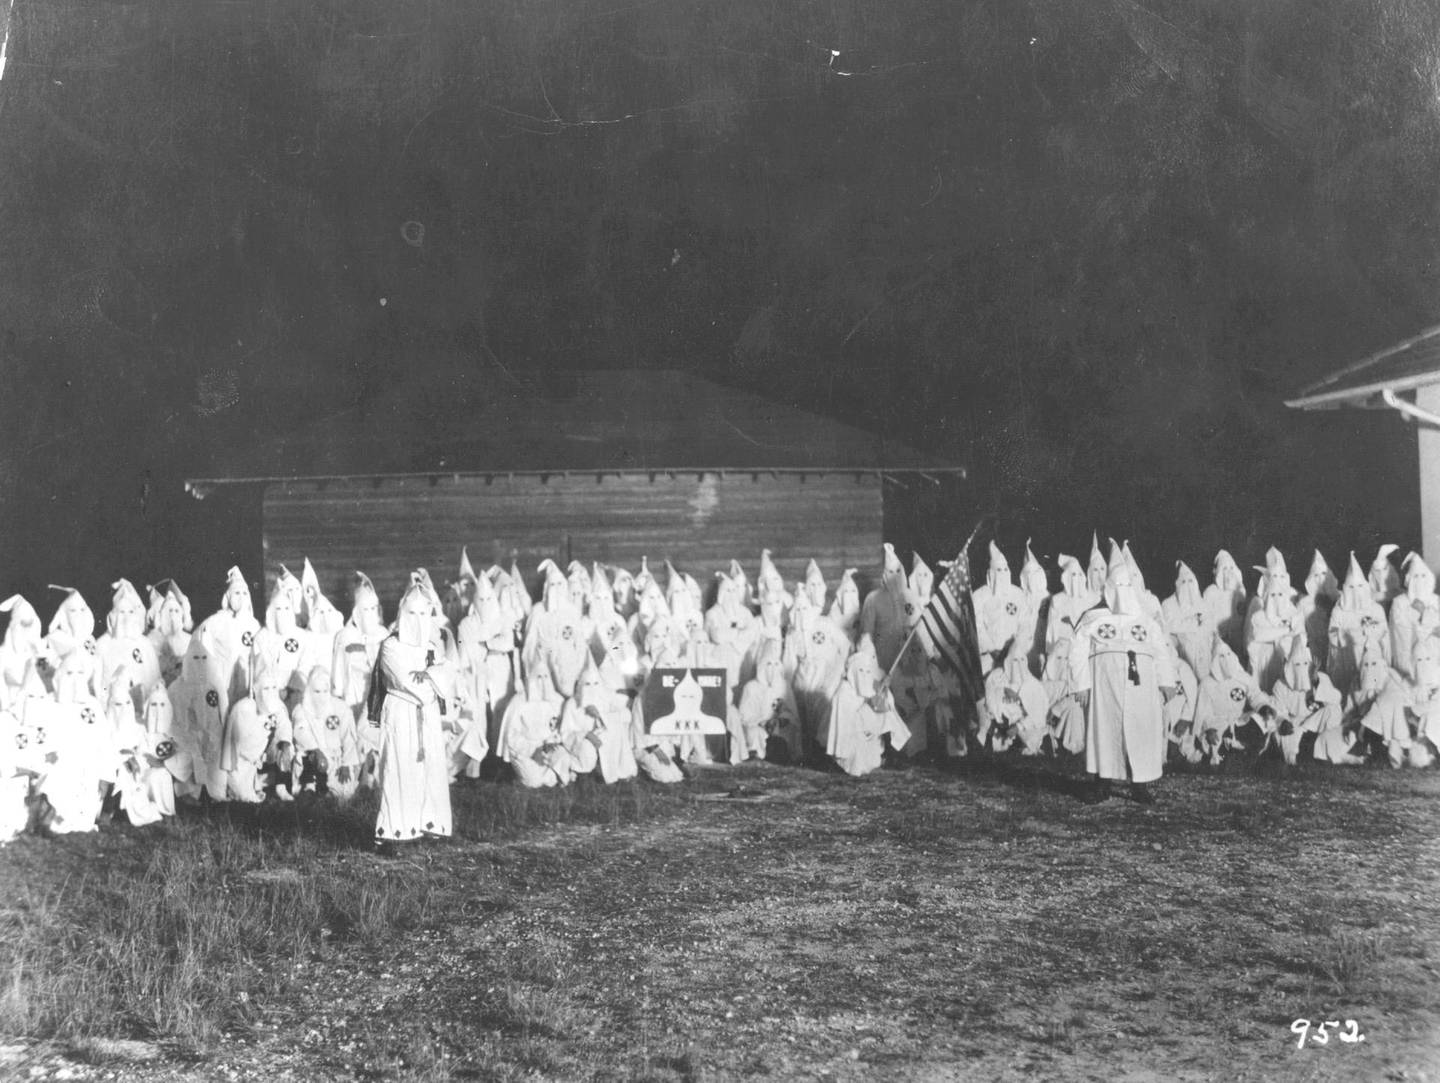 circa 1920:  A meeting of the hooded members of the American white supremecist movement, the Ku Klux Klan (KKK).  (Photo by Hulton Archive/Getty Images)